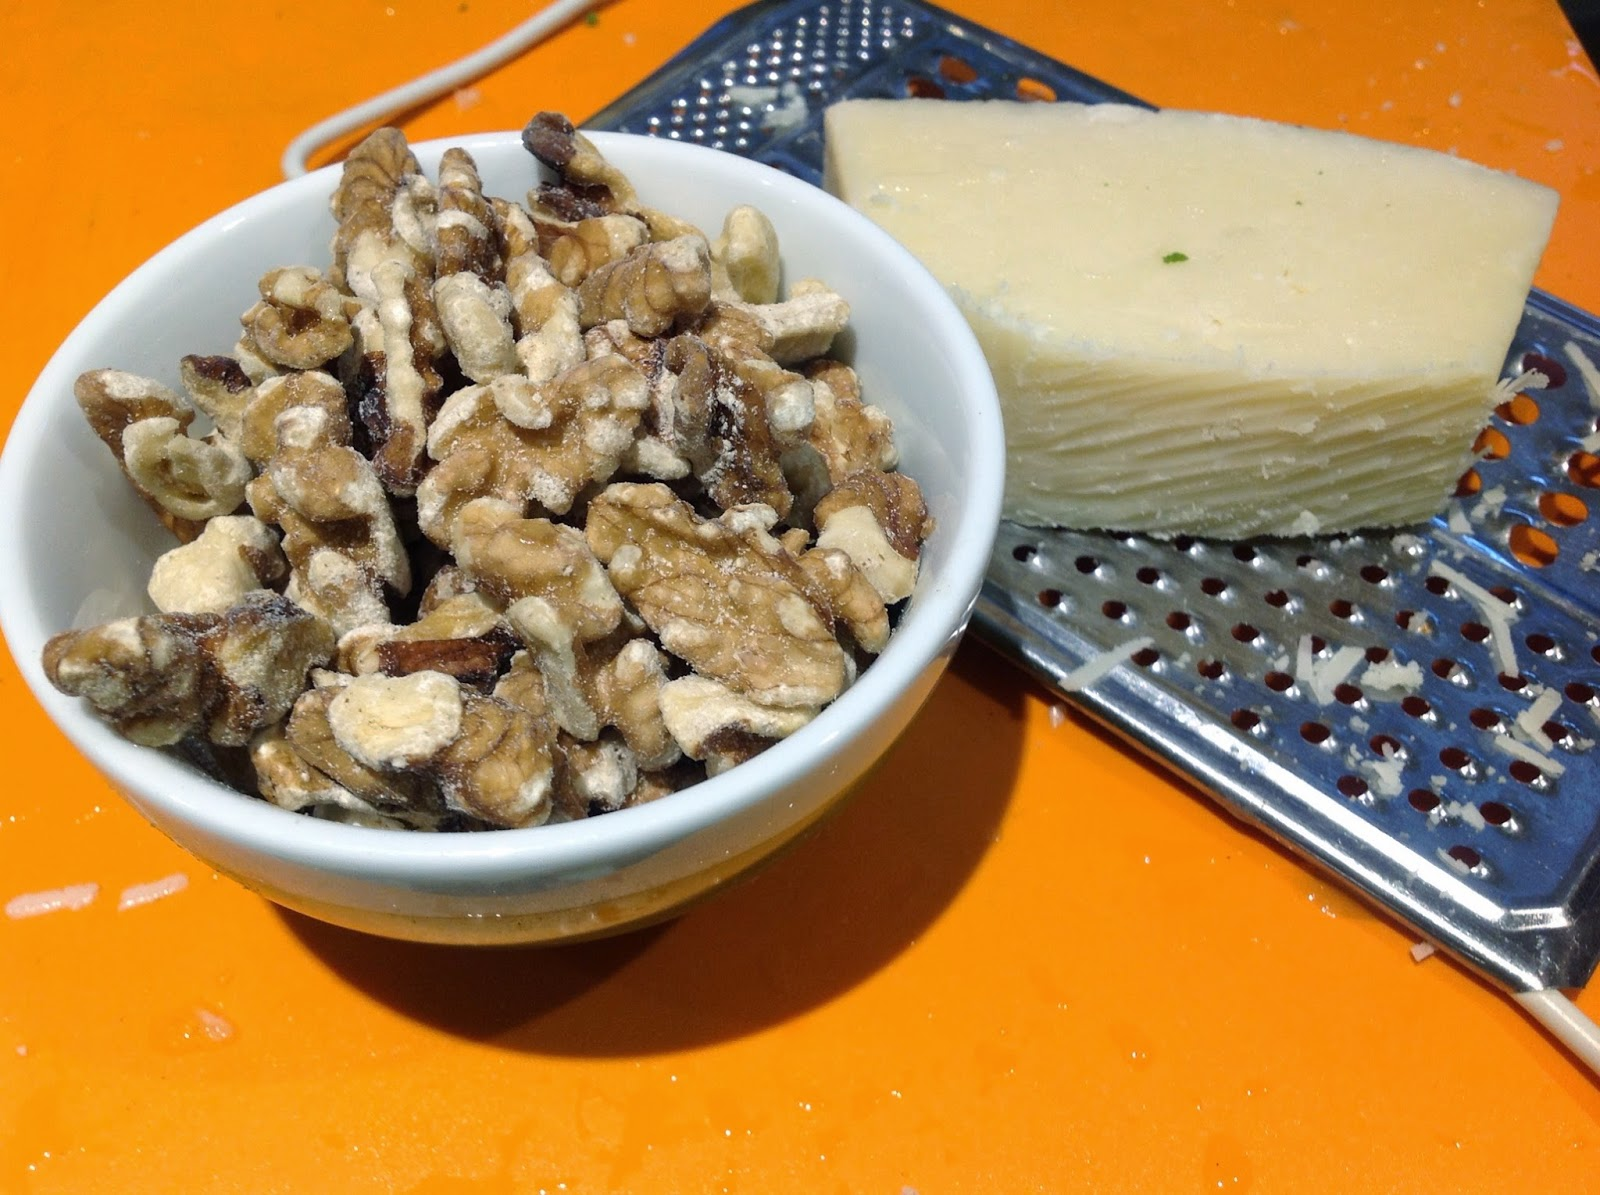 bowl of walnuts and Parmesan cheese